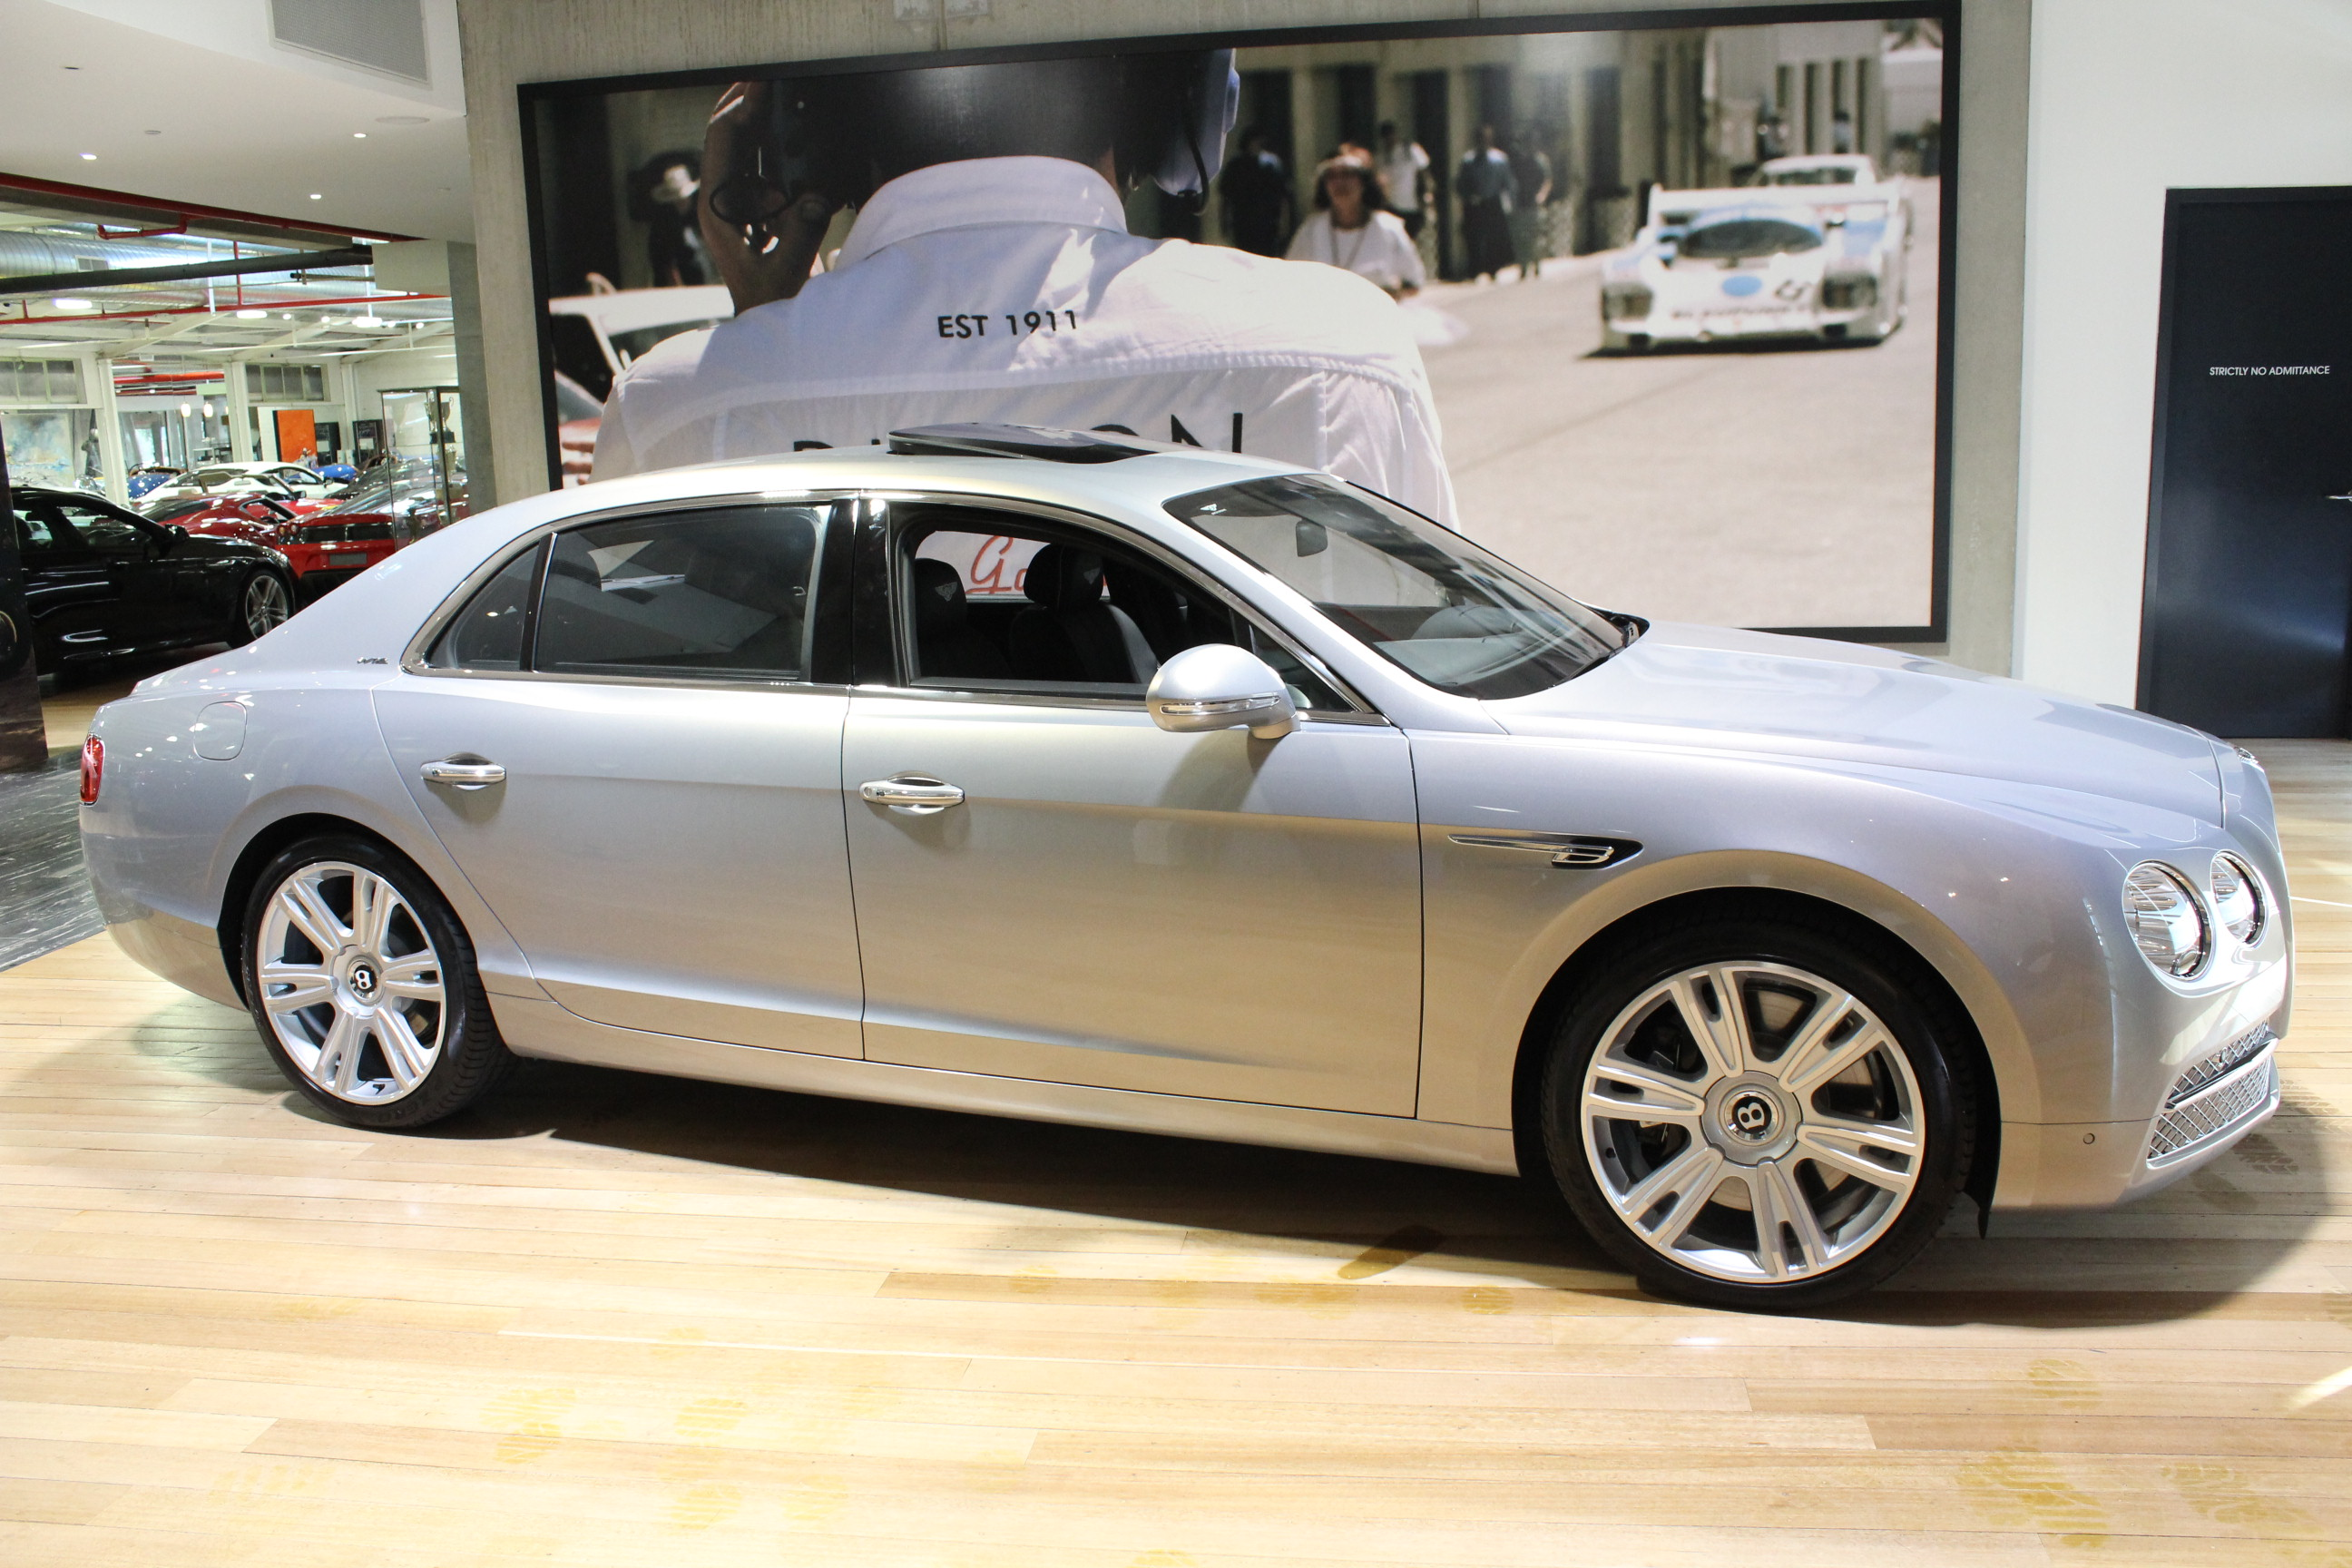 2015 Bentley Flying Spur 3W Sedan 4dr Spts Auto 8sp AWD 6.0TT [MY16] - for sale in Australia